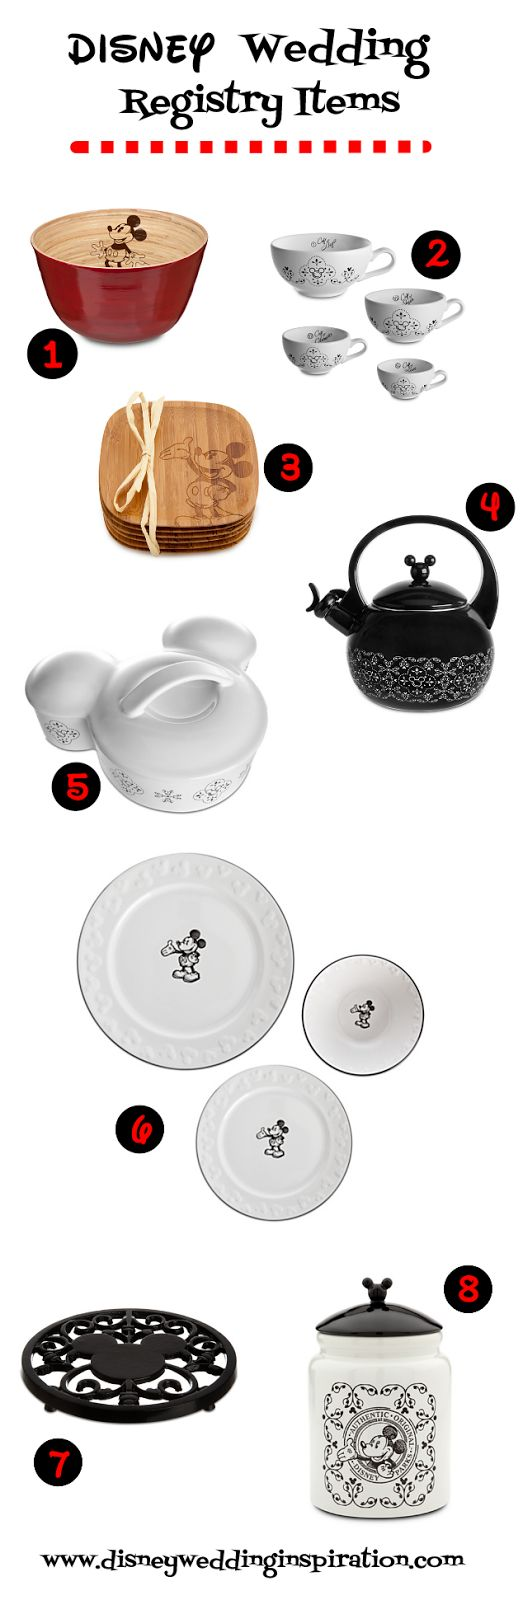 Inspired By Dis: Wedding Registry Necessities - Gourmet Mickey Mouse Kitchen Items